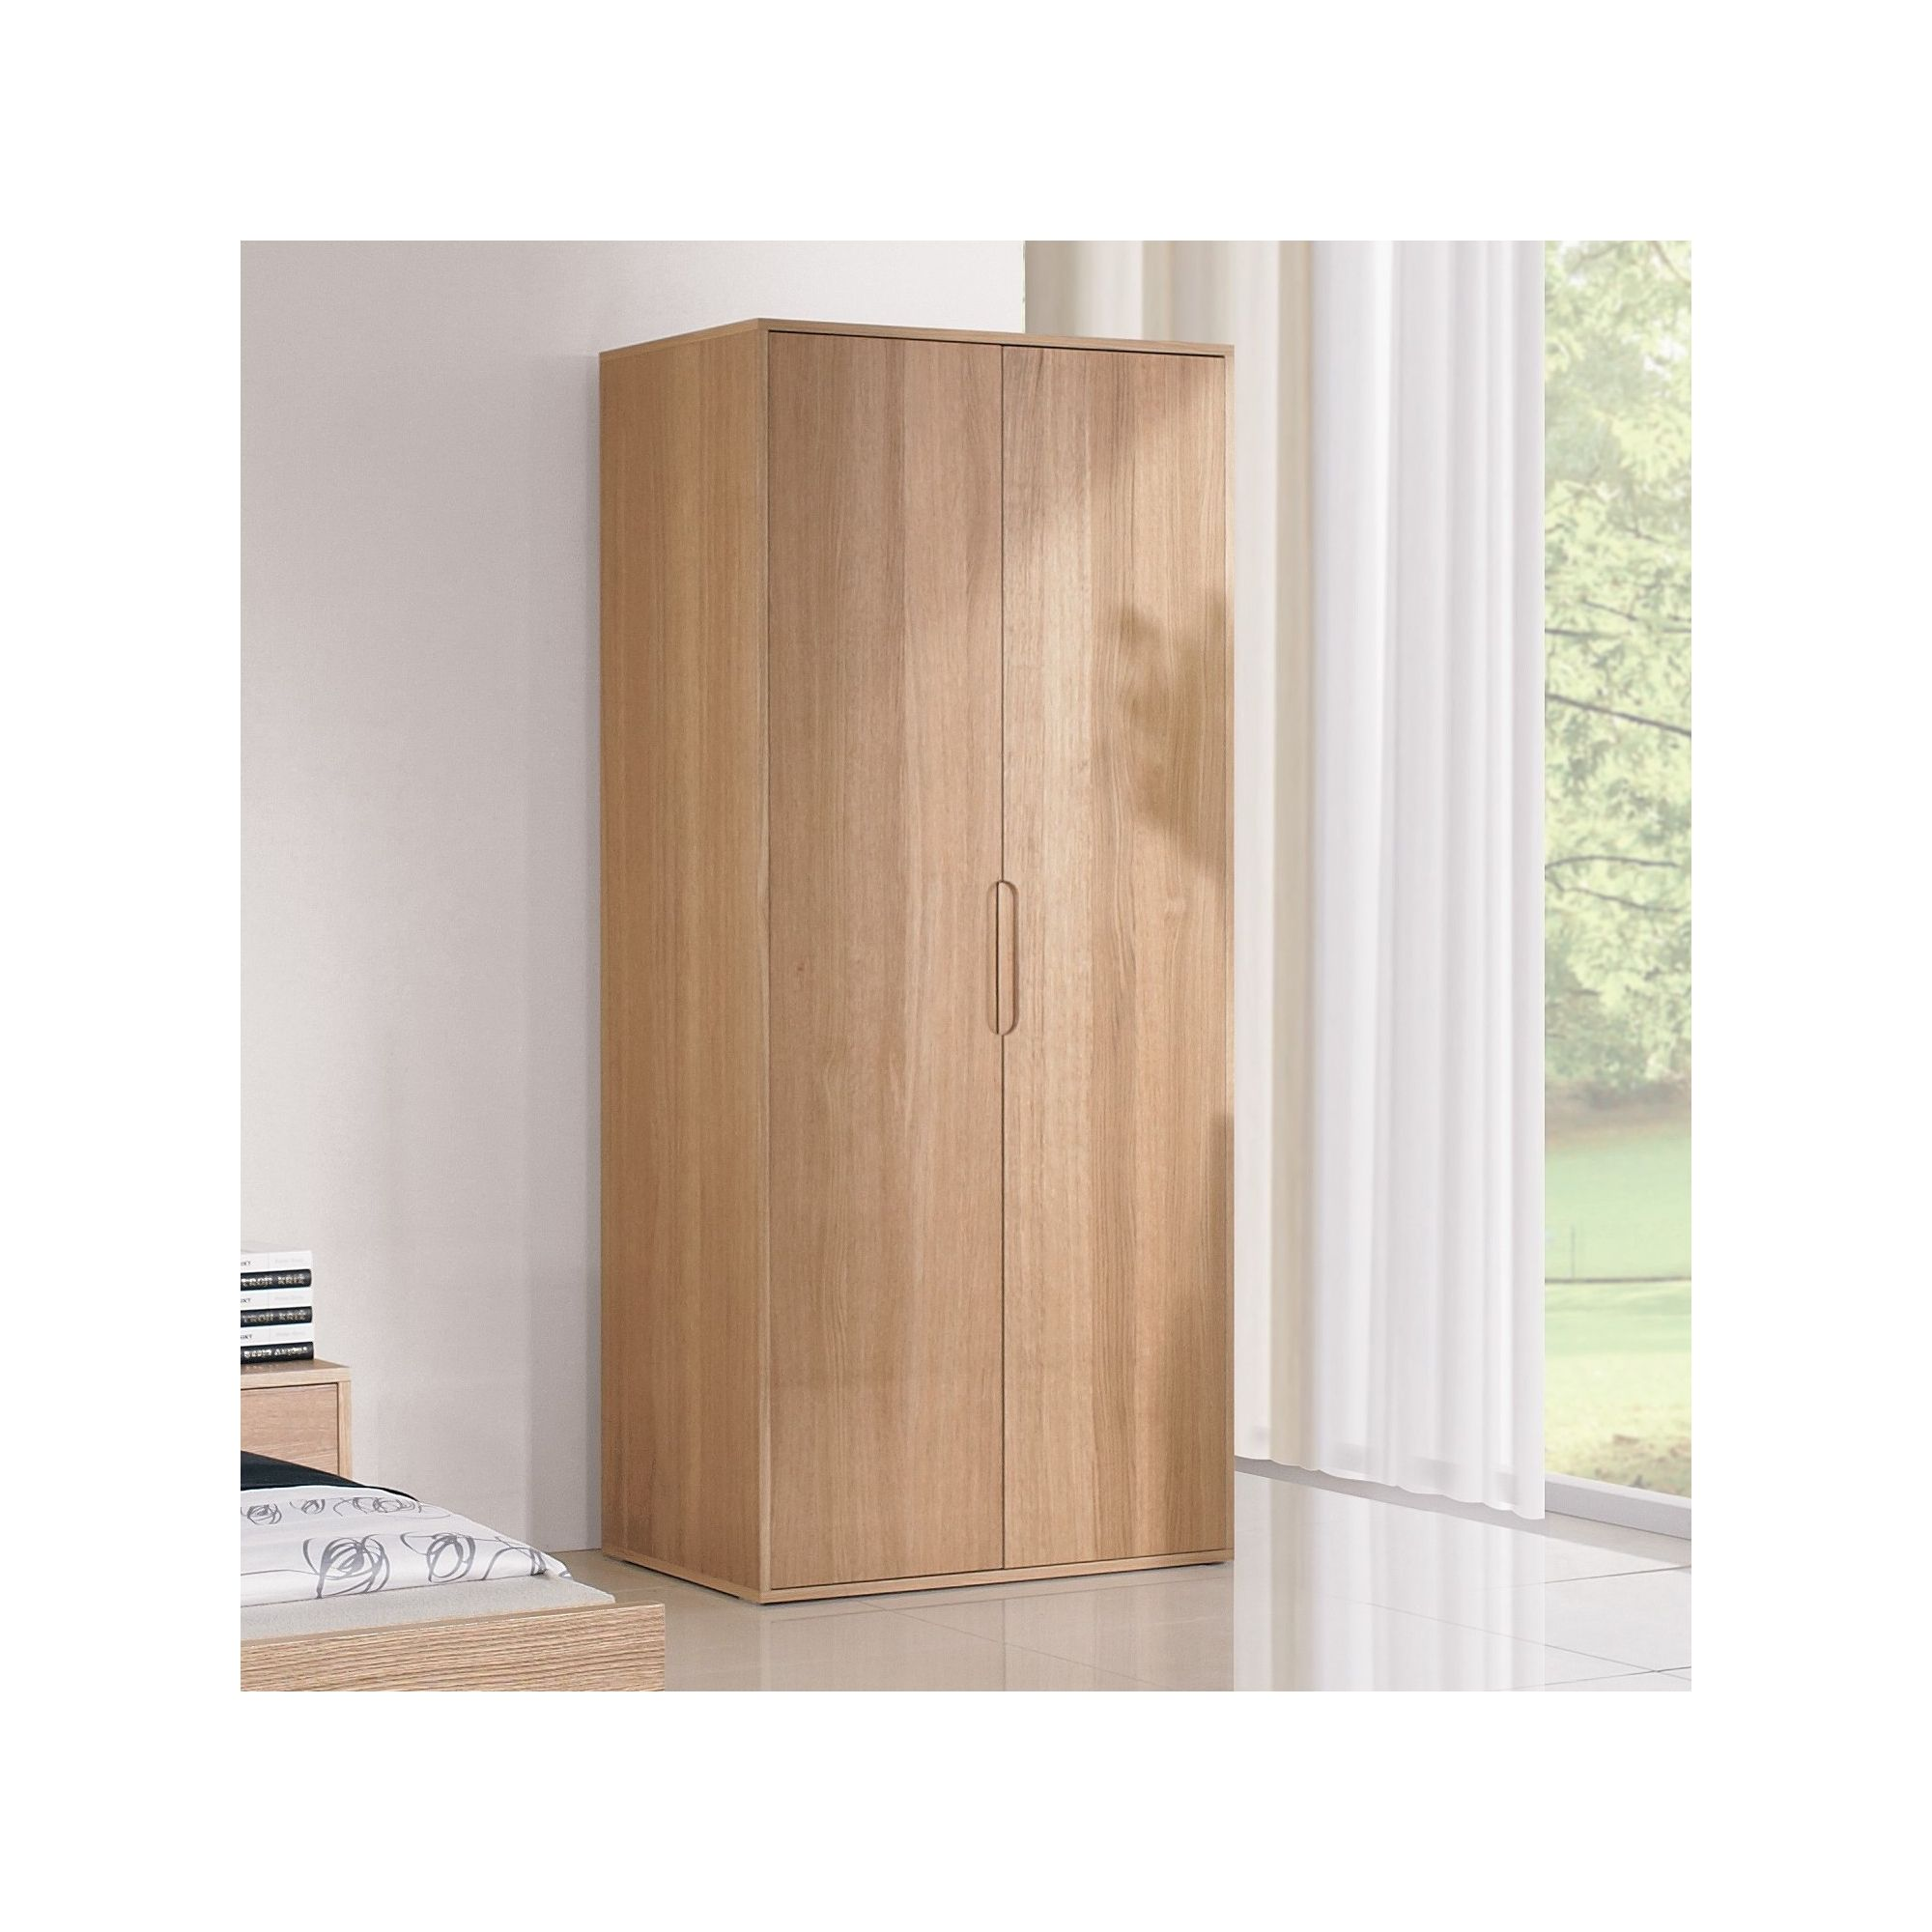 Urbane Designs Bolero 2 Door Wardrobe in Oak at Tesco Direct